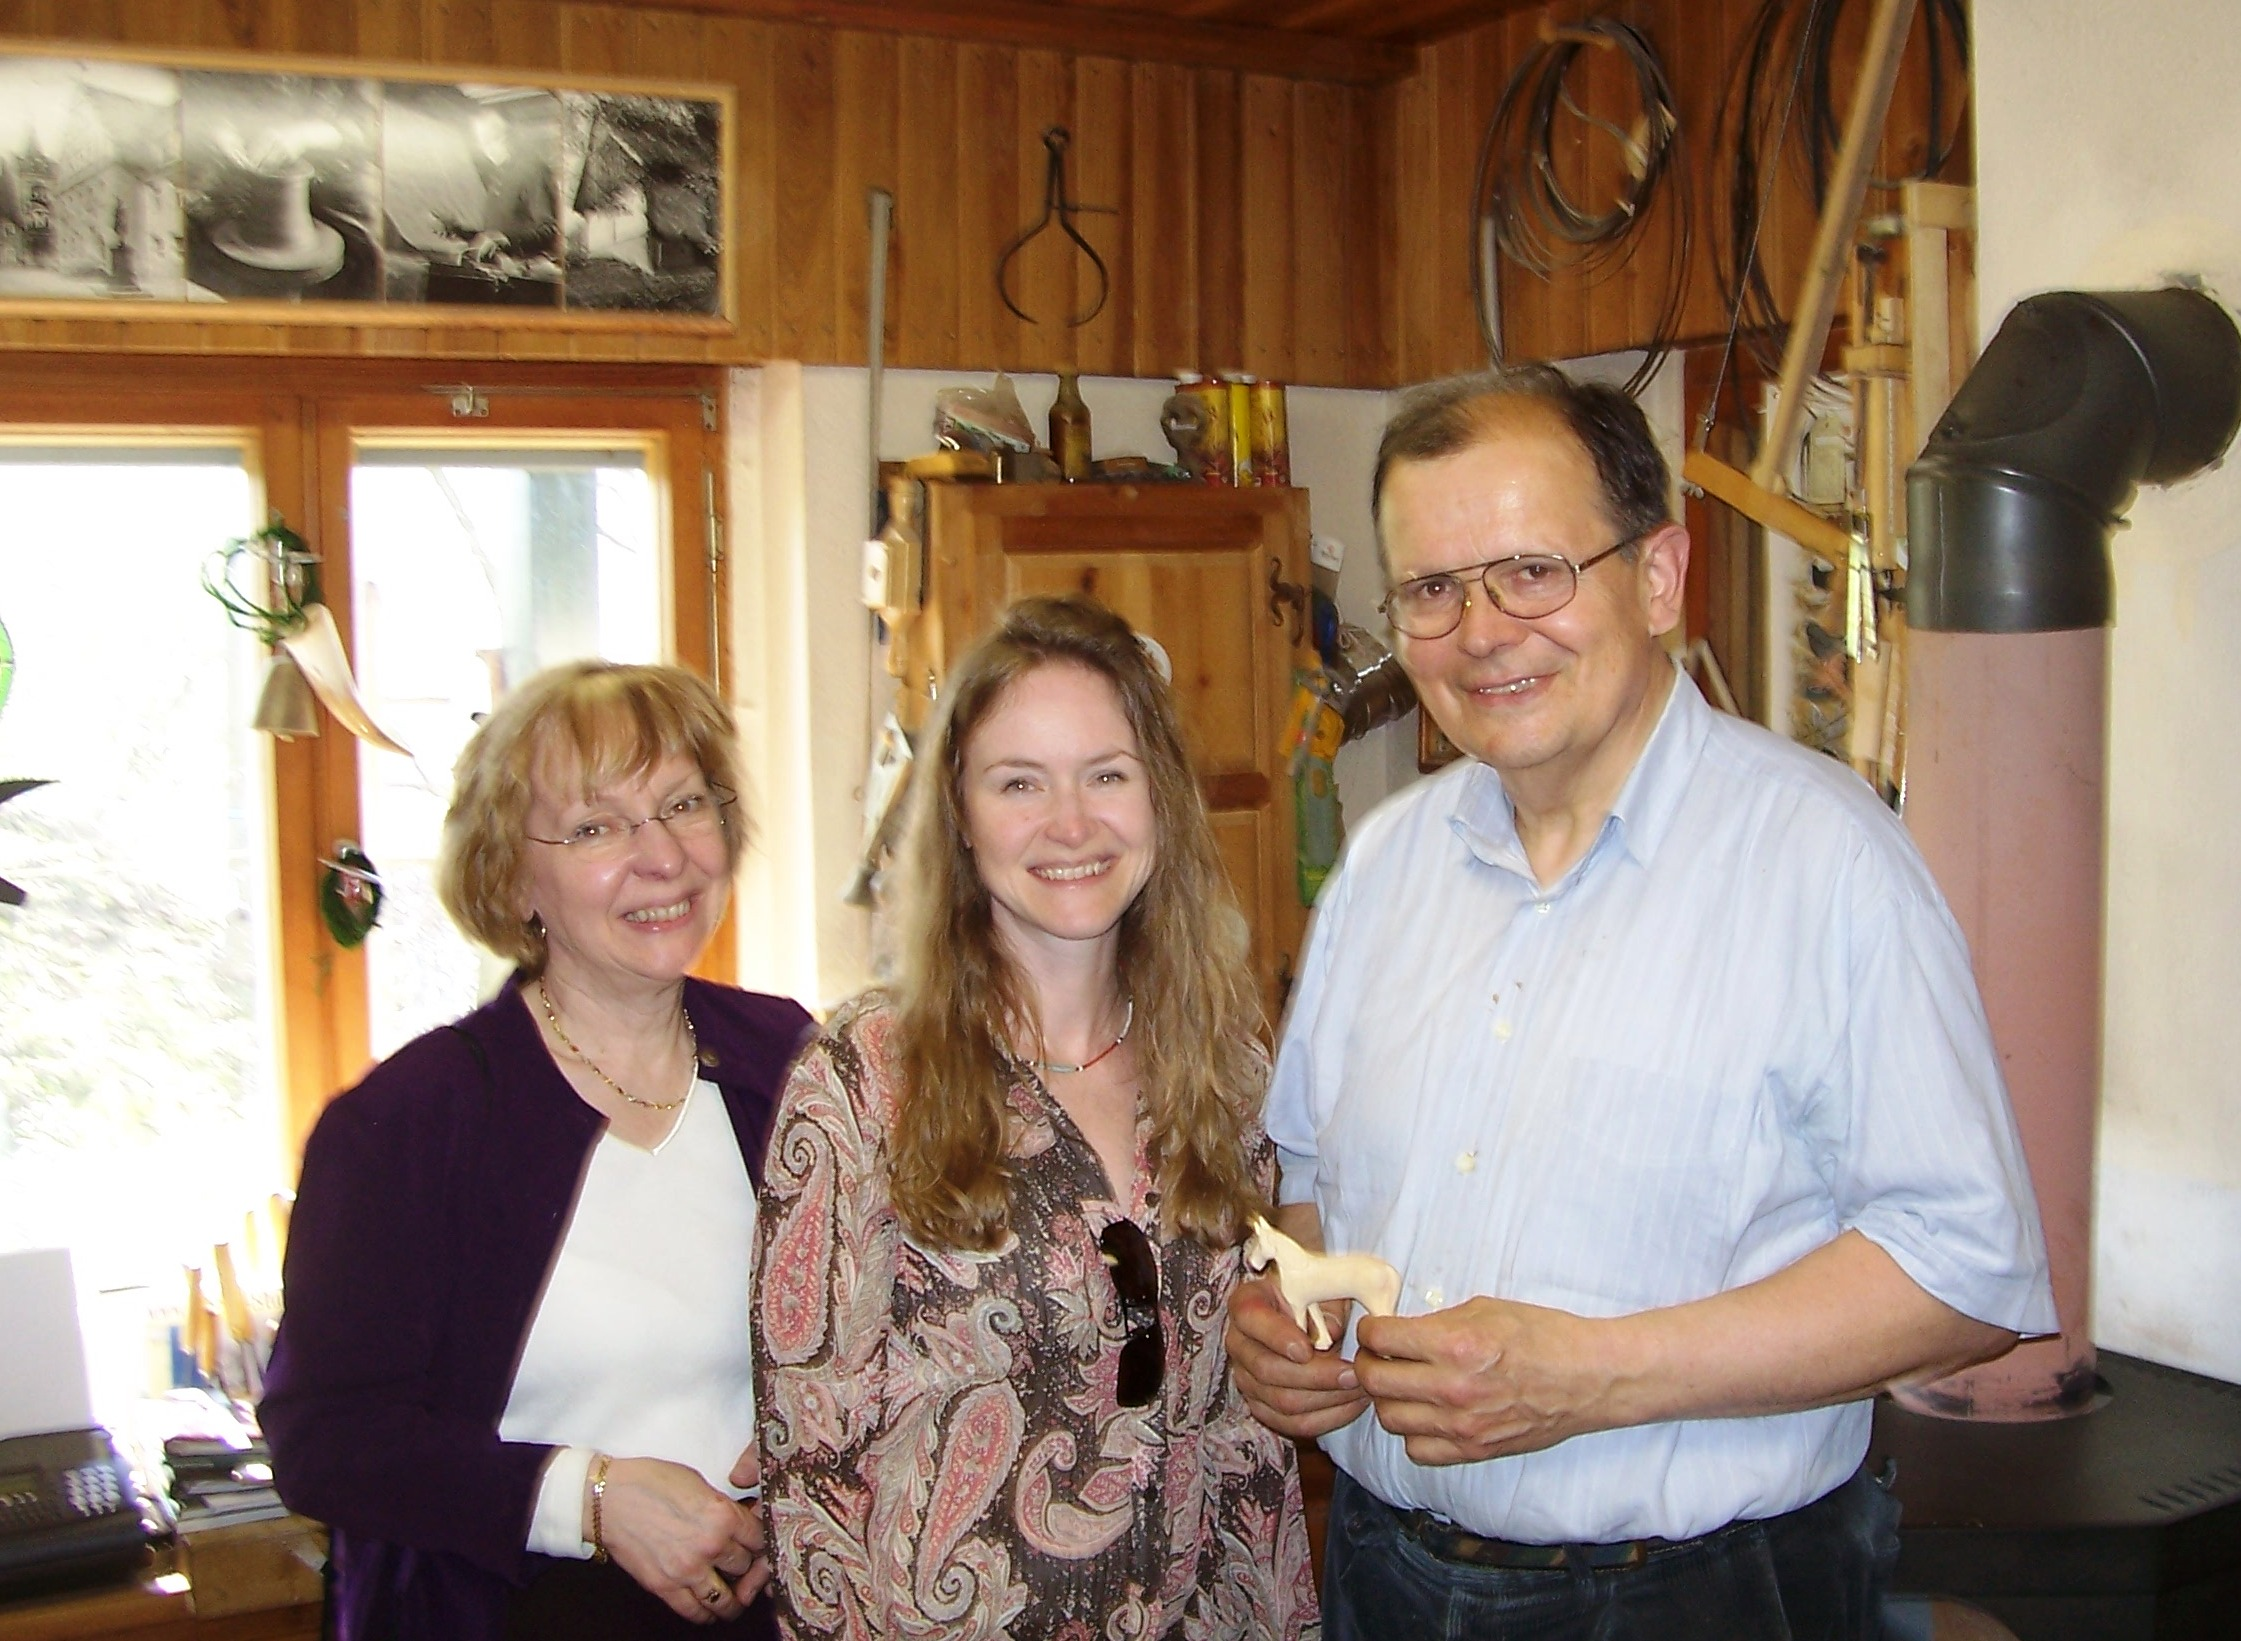 Norma and Loreen with Herr Steglich, crafter of some of our favorite Smokers